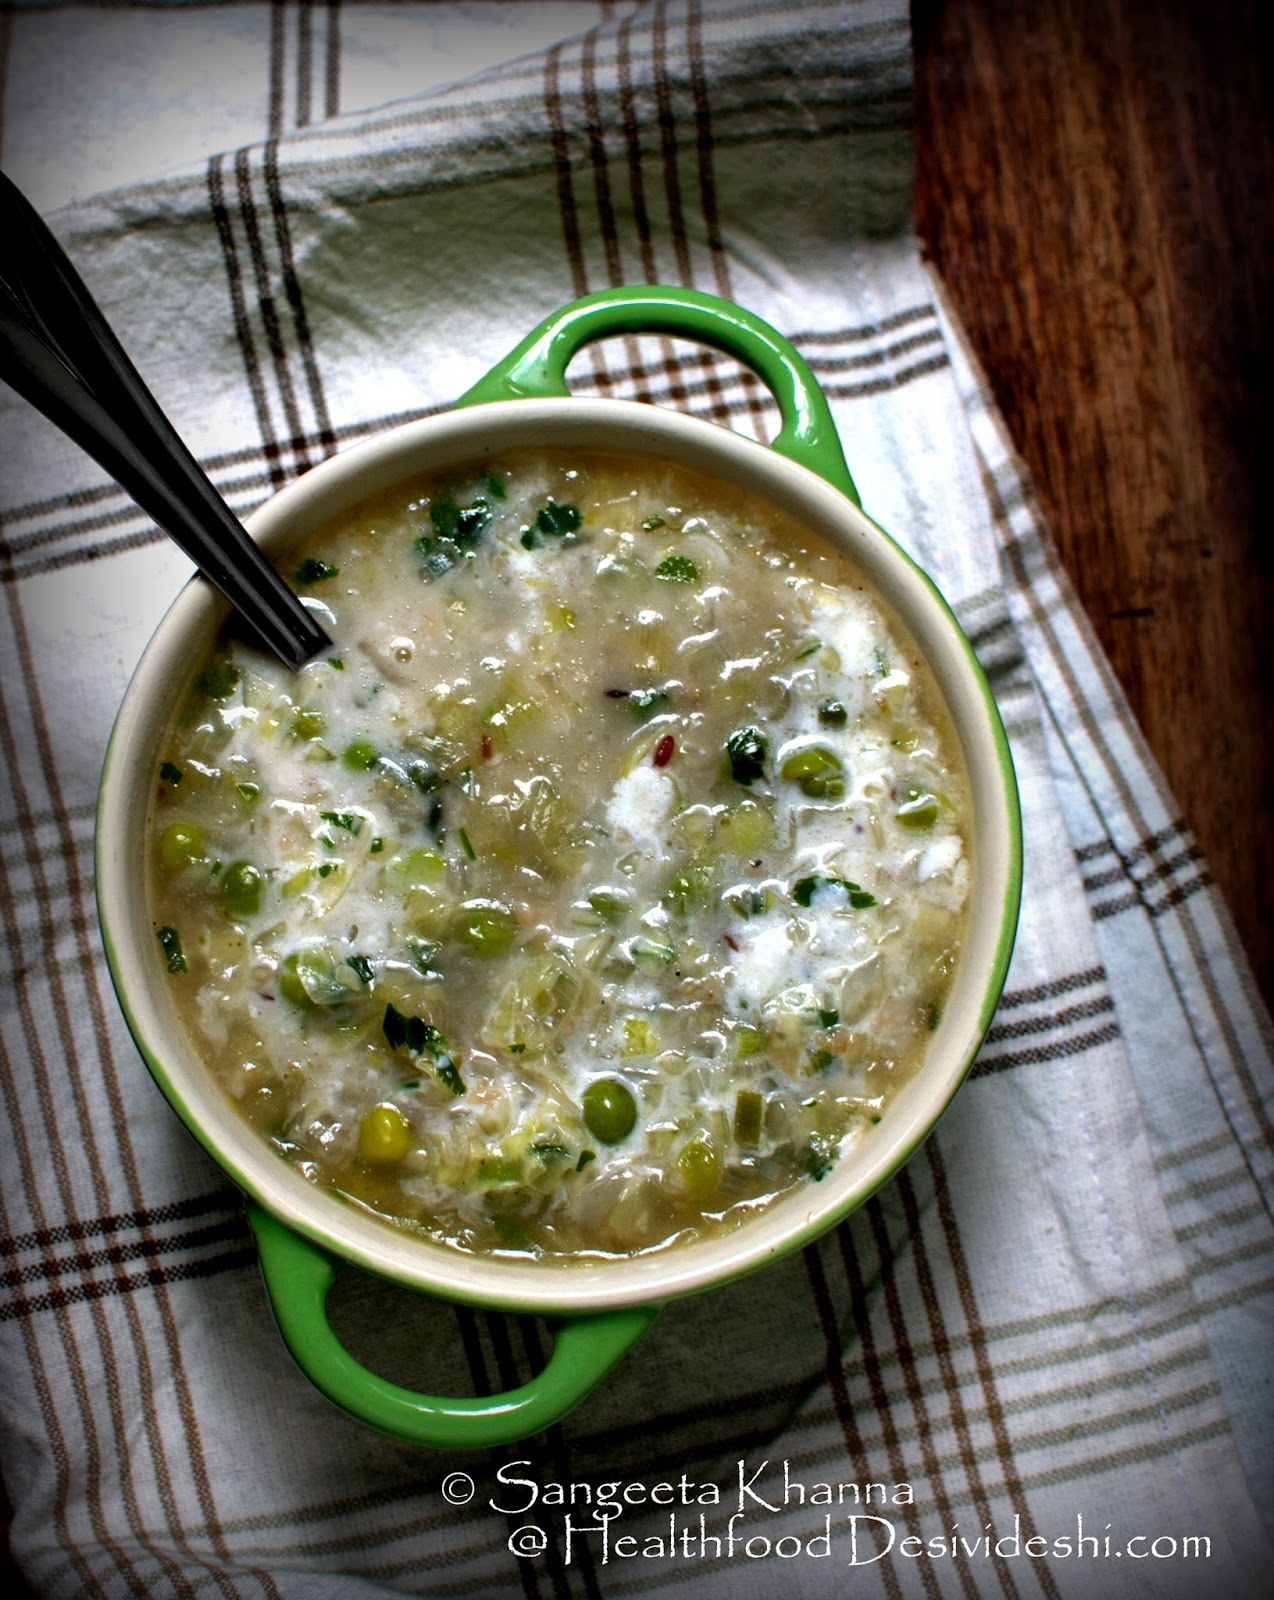 soup dinners : cabbage and peas soup with seasonal herbs